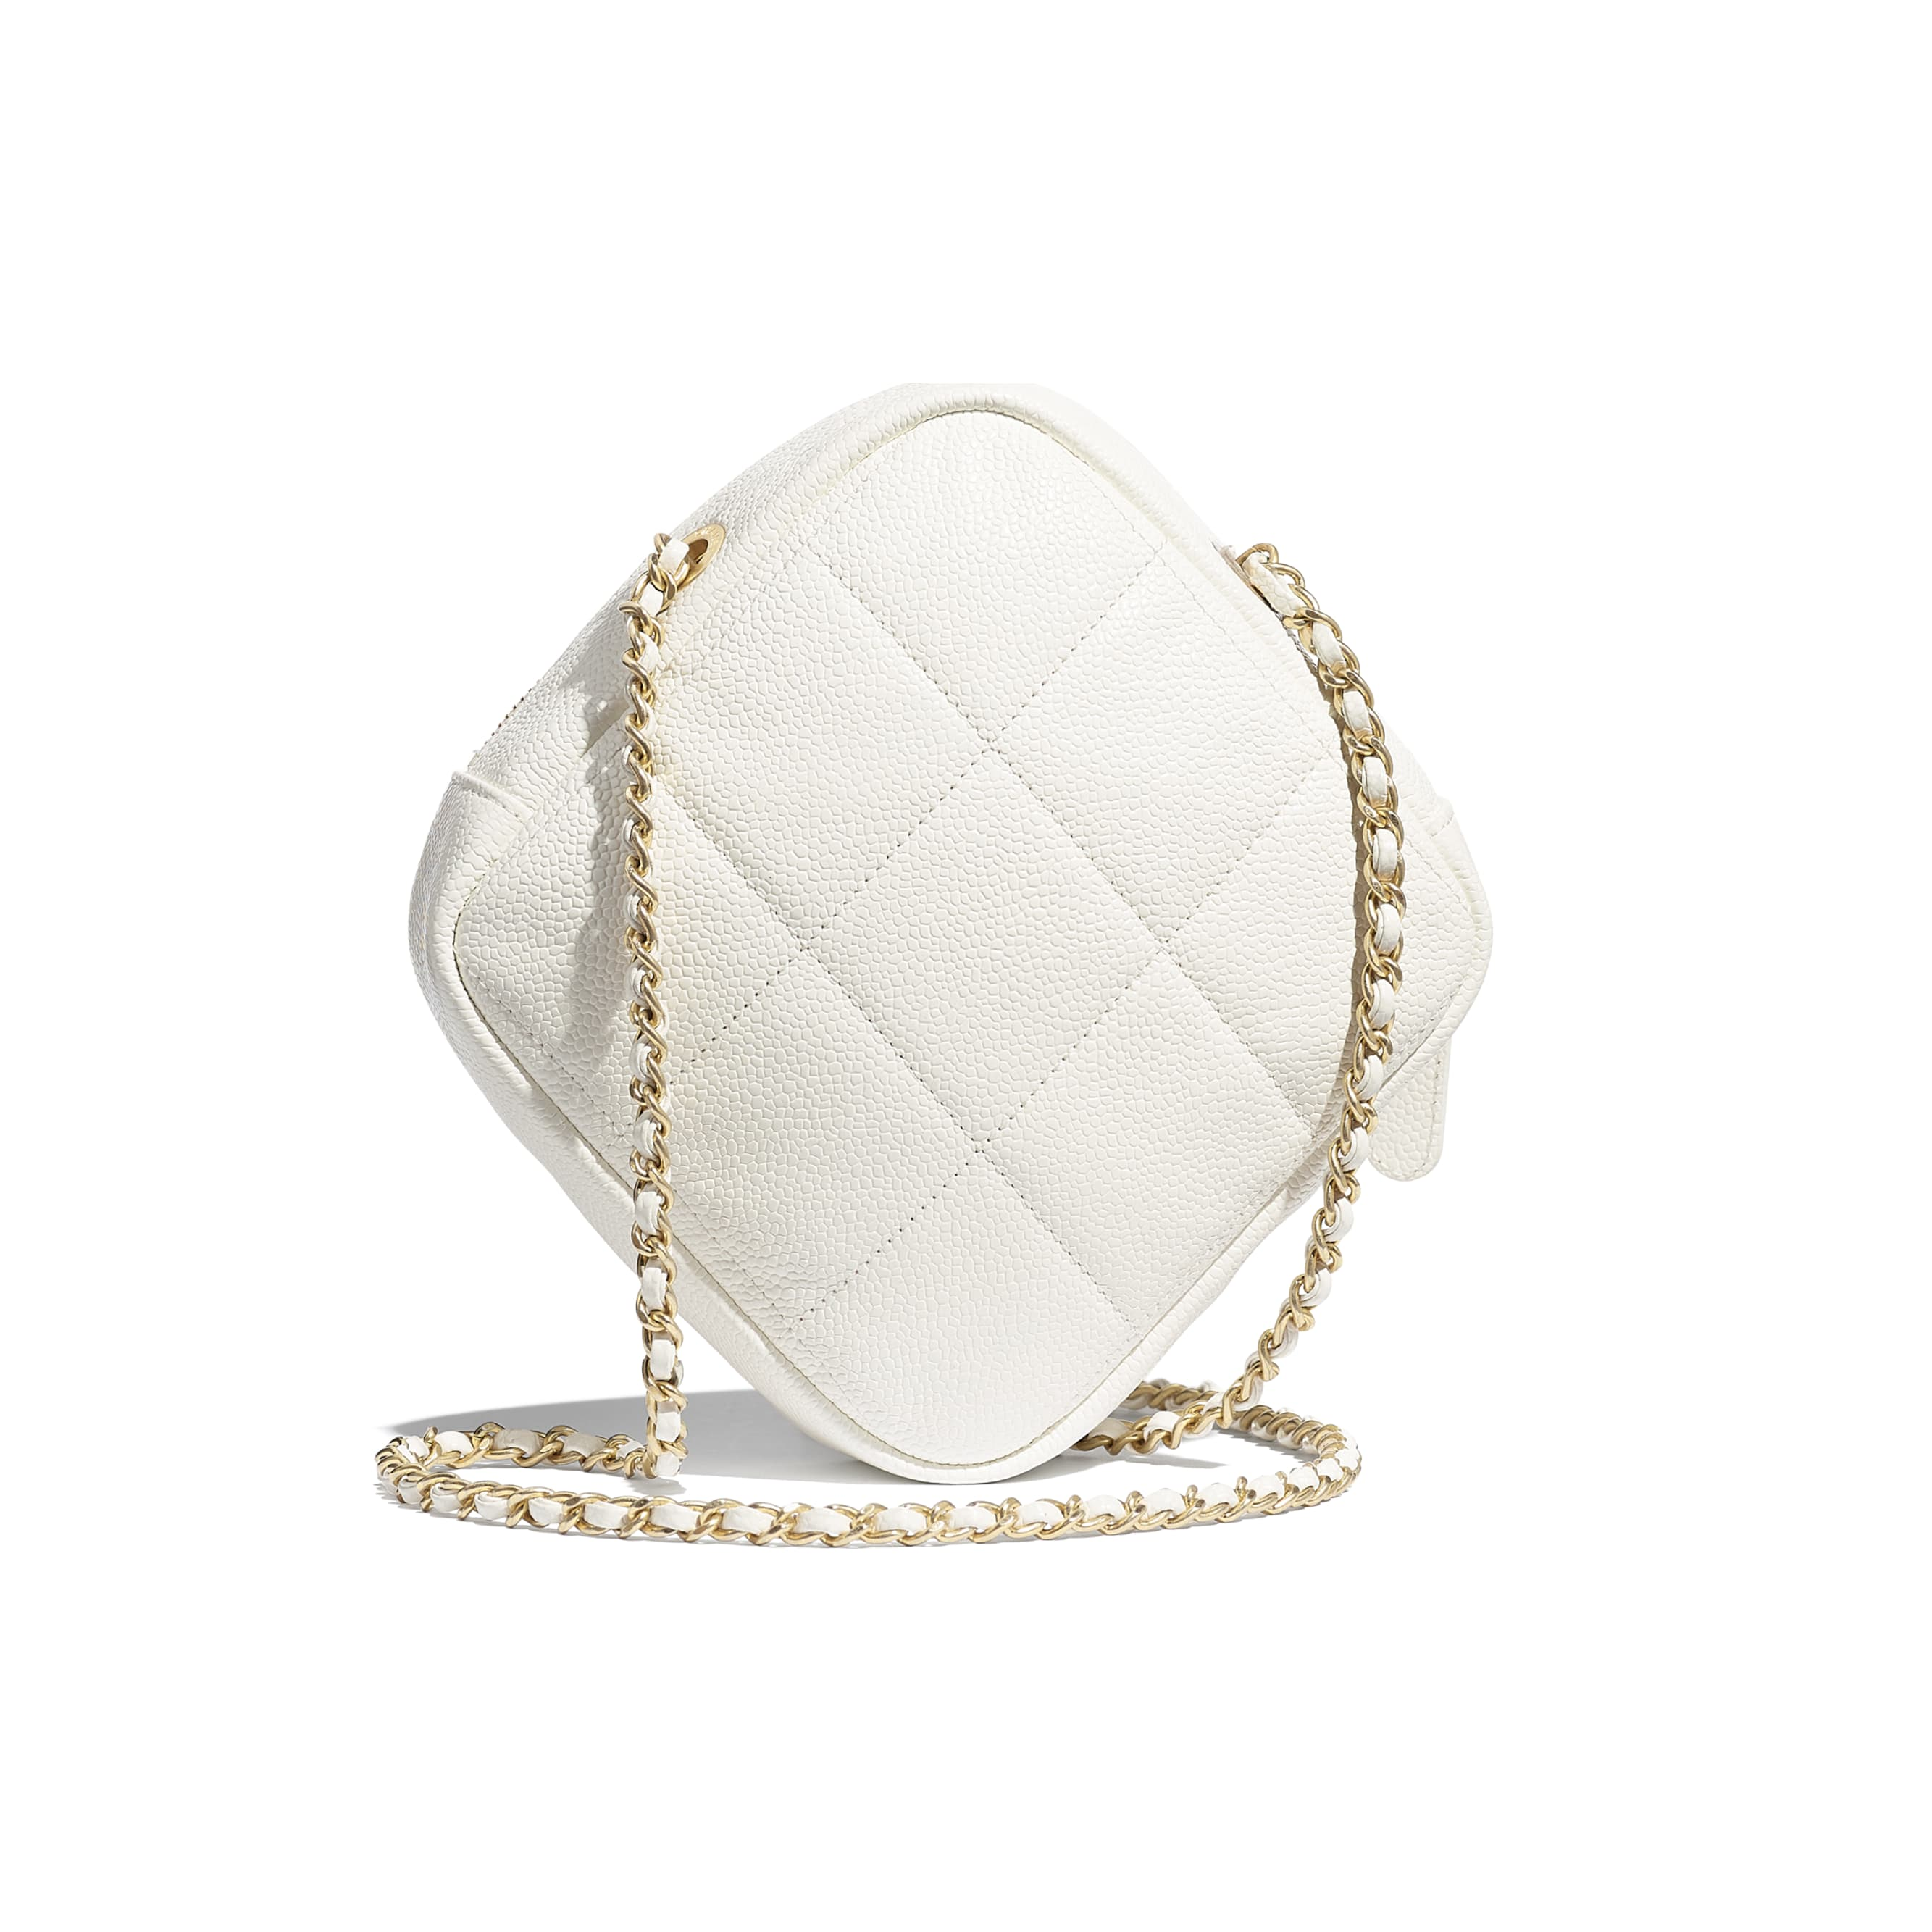 Small Diamond Bag - White - Grained Calfskin & Gold-Tone Metal - CHANEL - Alternative view - see standard sized version